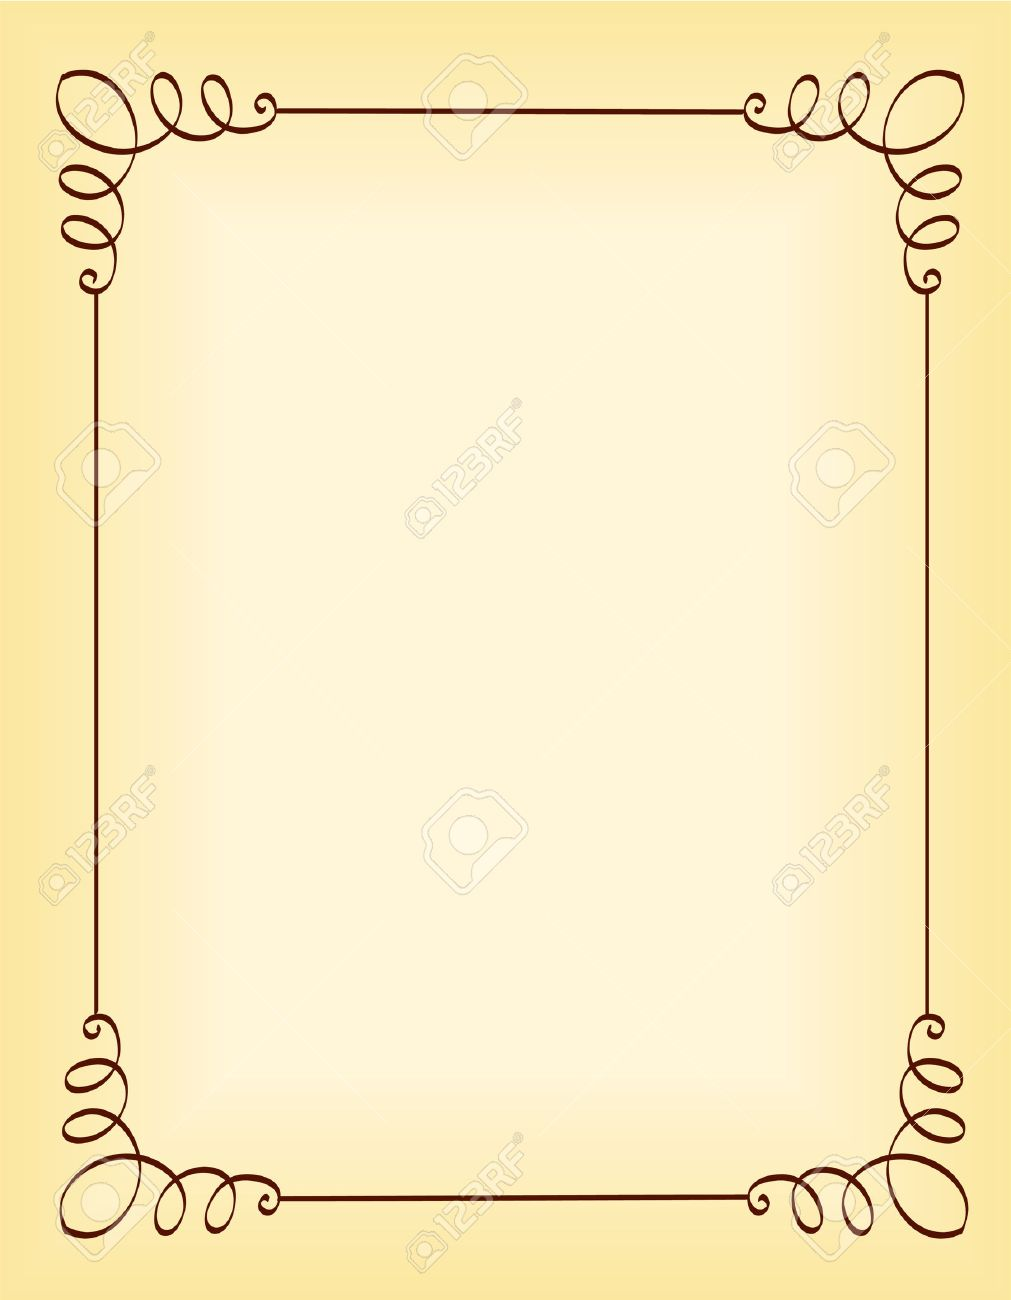 Unique Ornamental Border Frame For Party Invitation Backgrounds